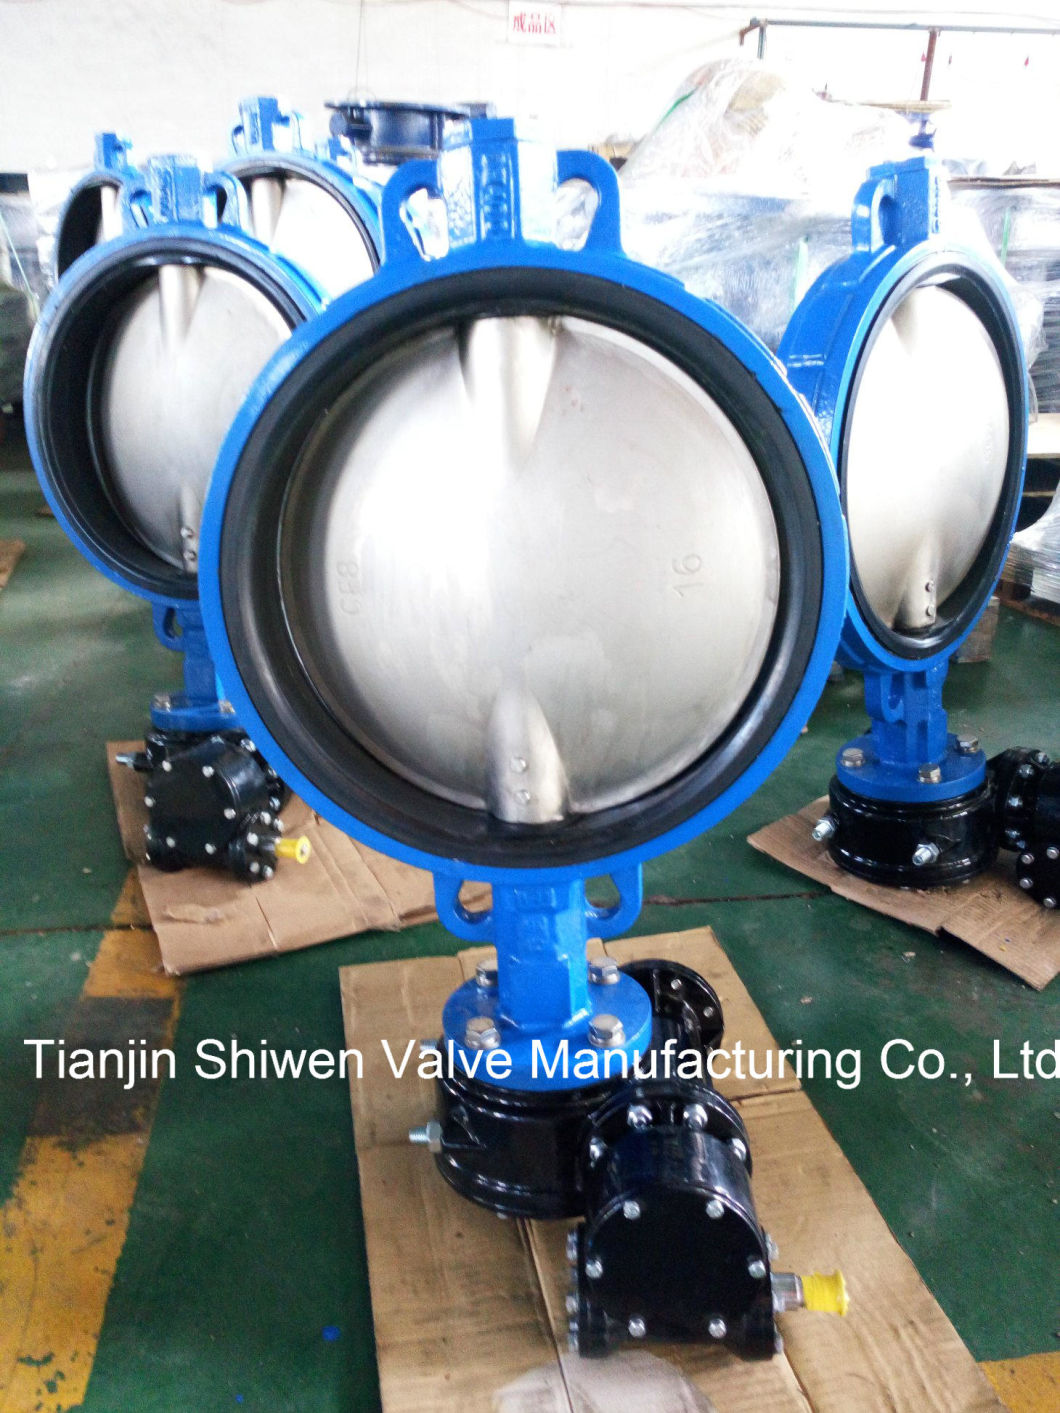 API/JIS 10K Wafer Type Butterfly Valve with Gear Operator